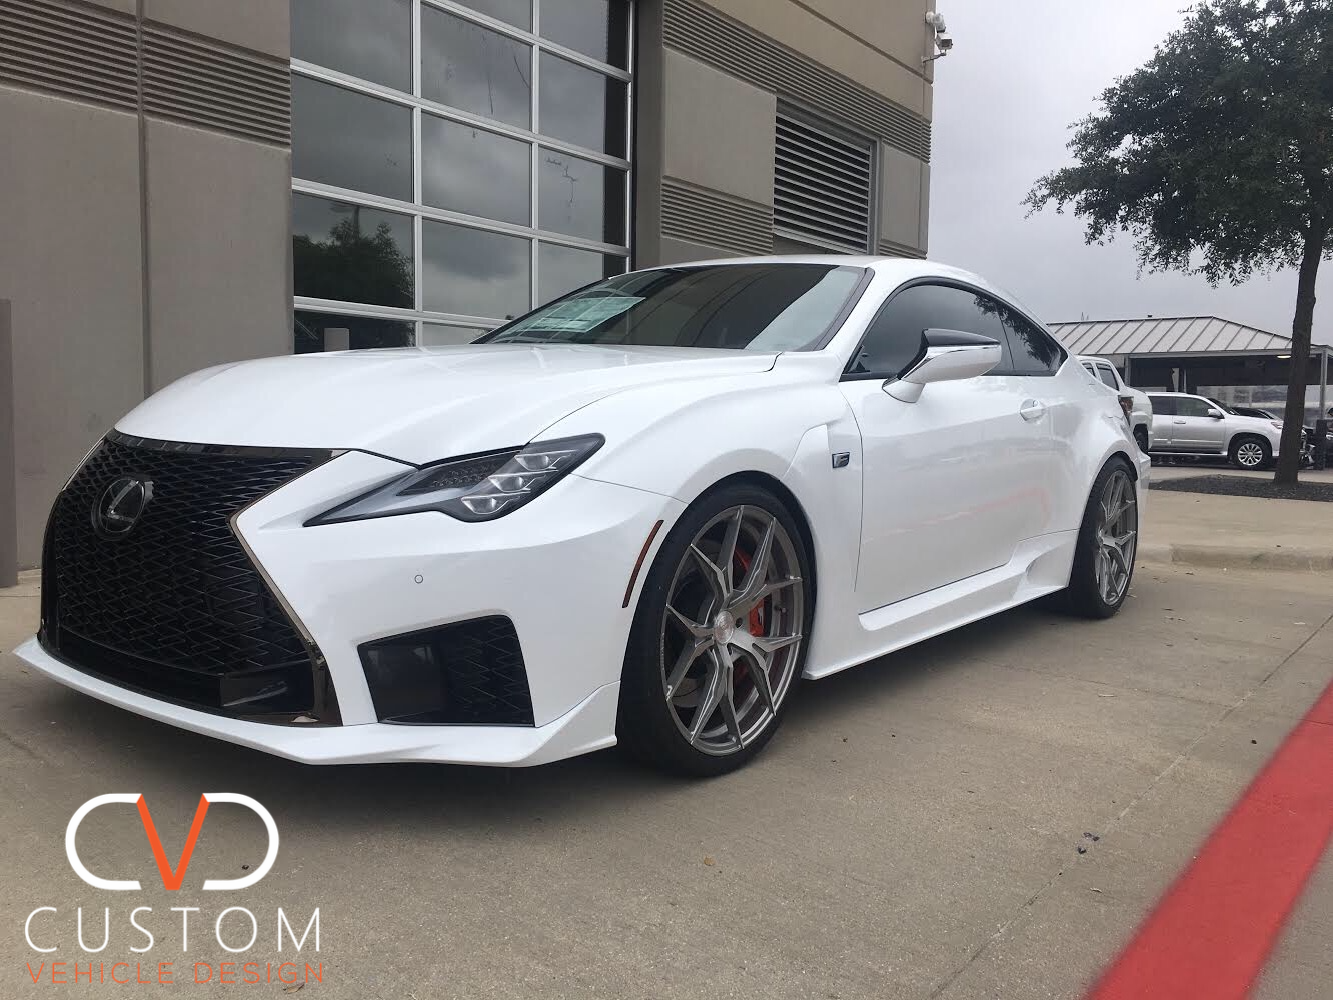 2020 Lexus RC F with Rohana RFX5 wheels 2020 Lexus RC